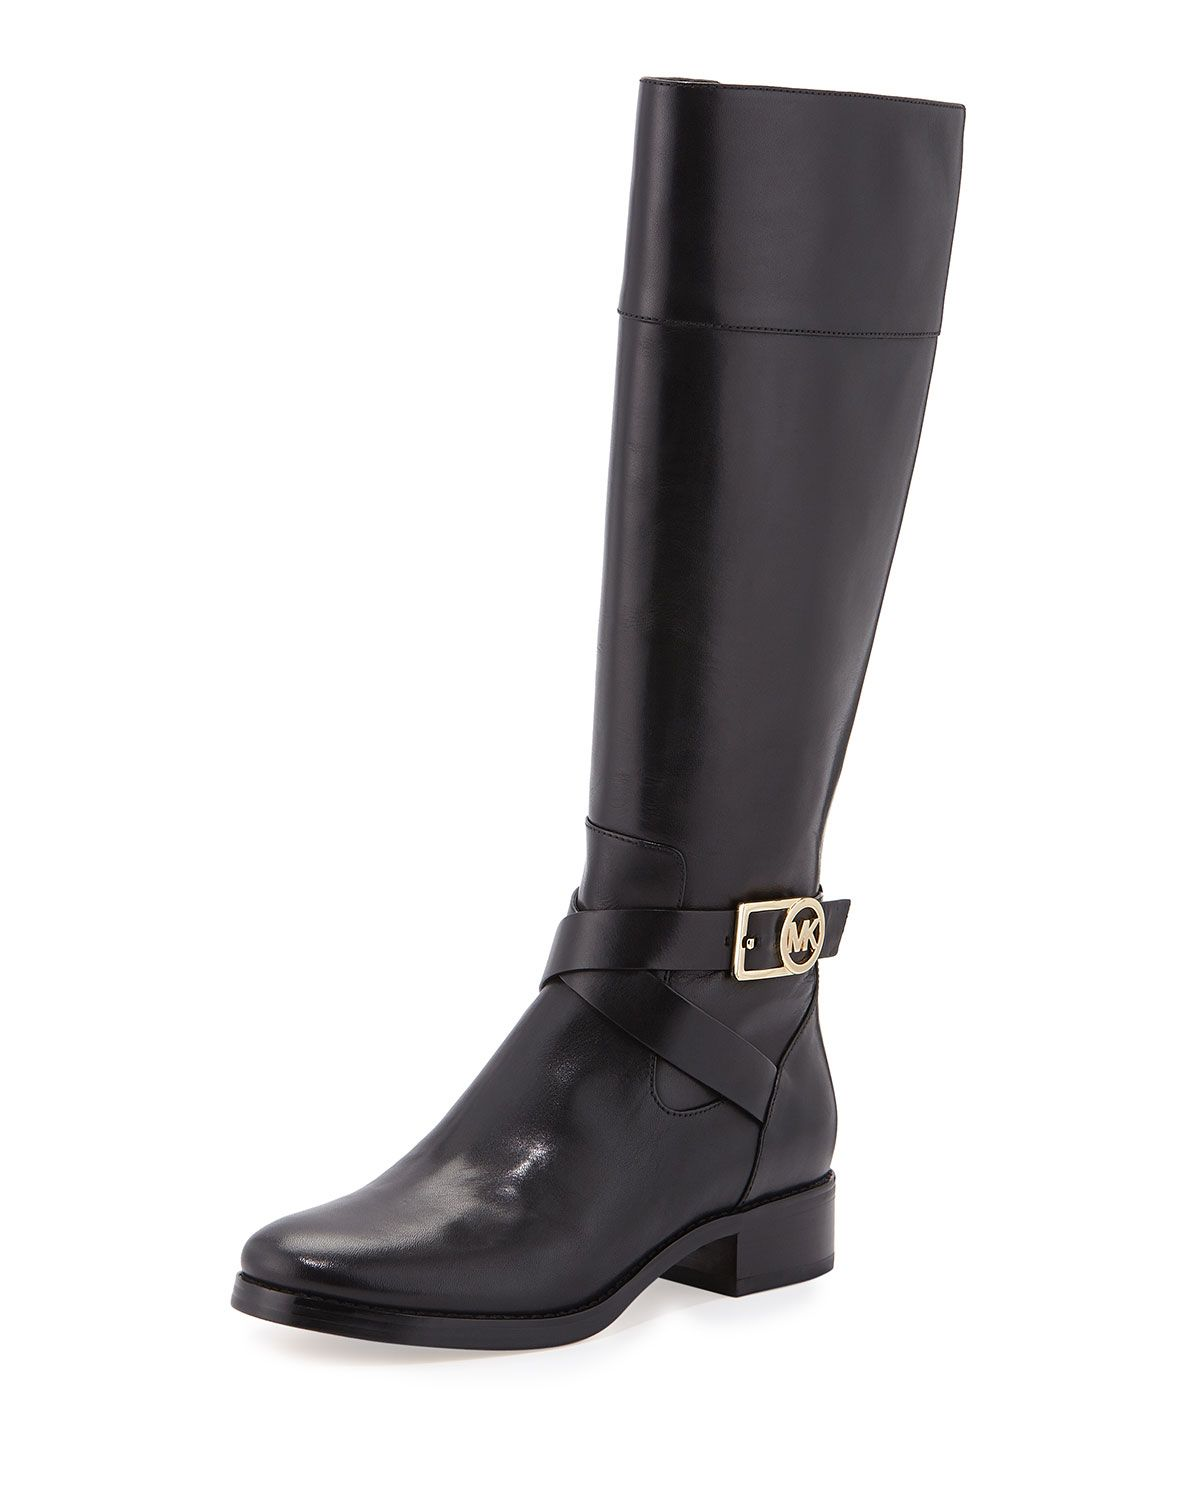 Michael Kors Bryce Leather Riding Boot